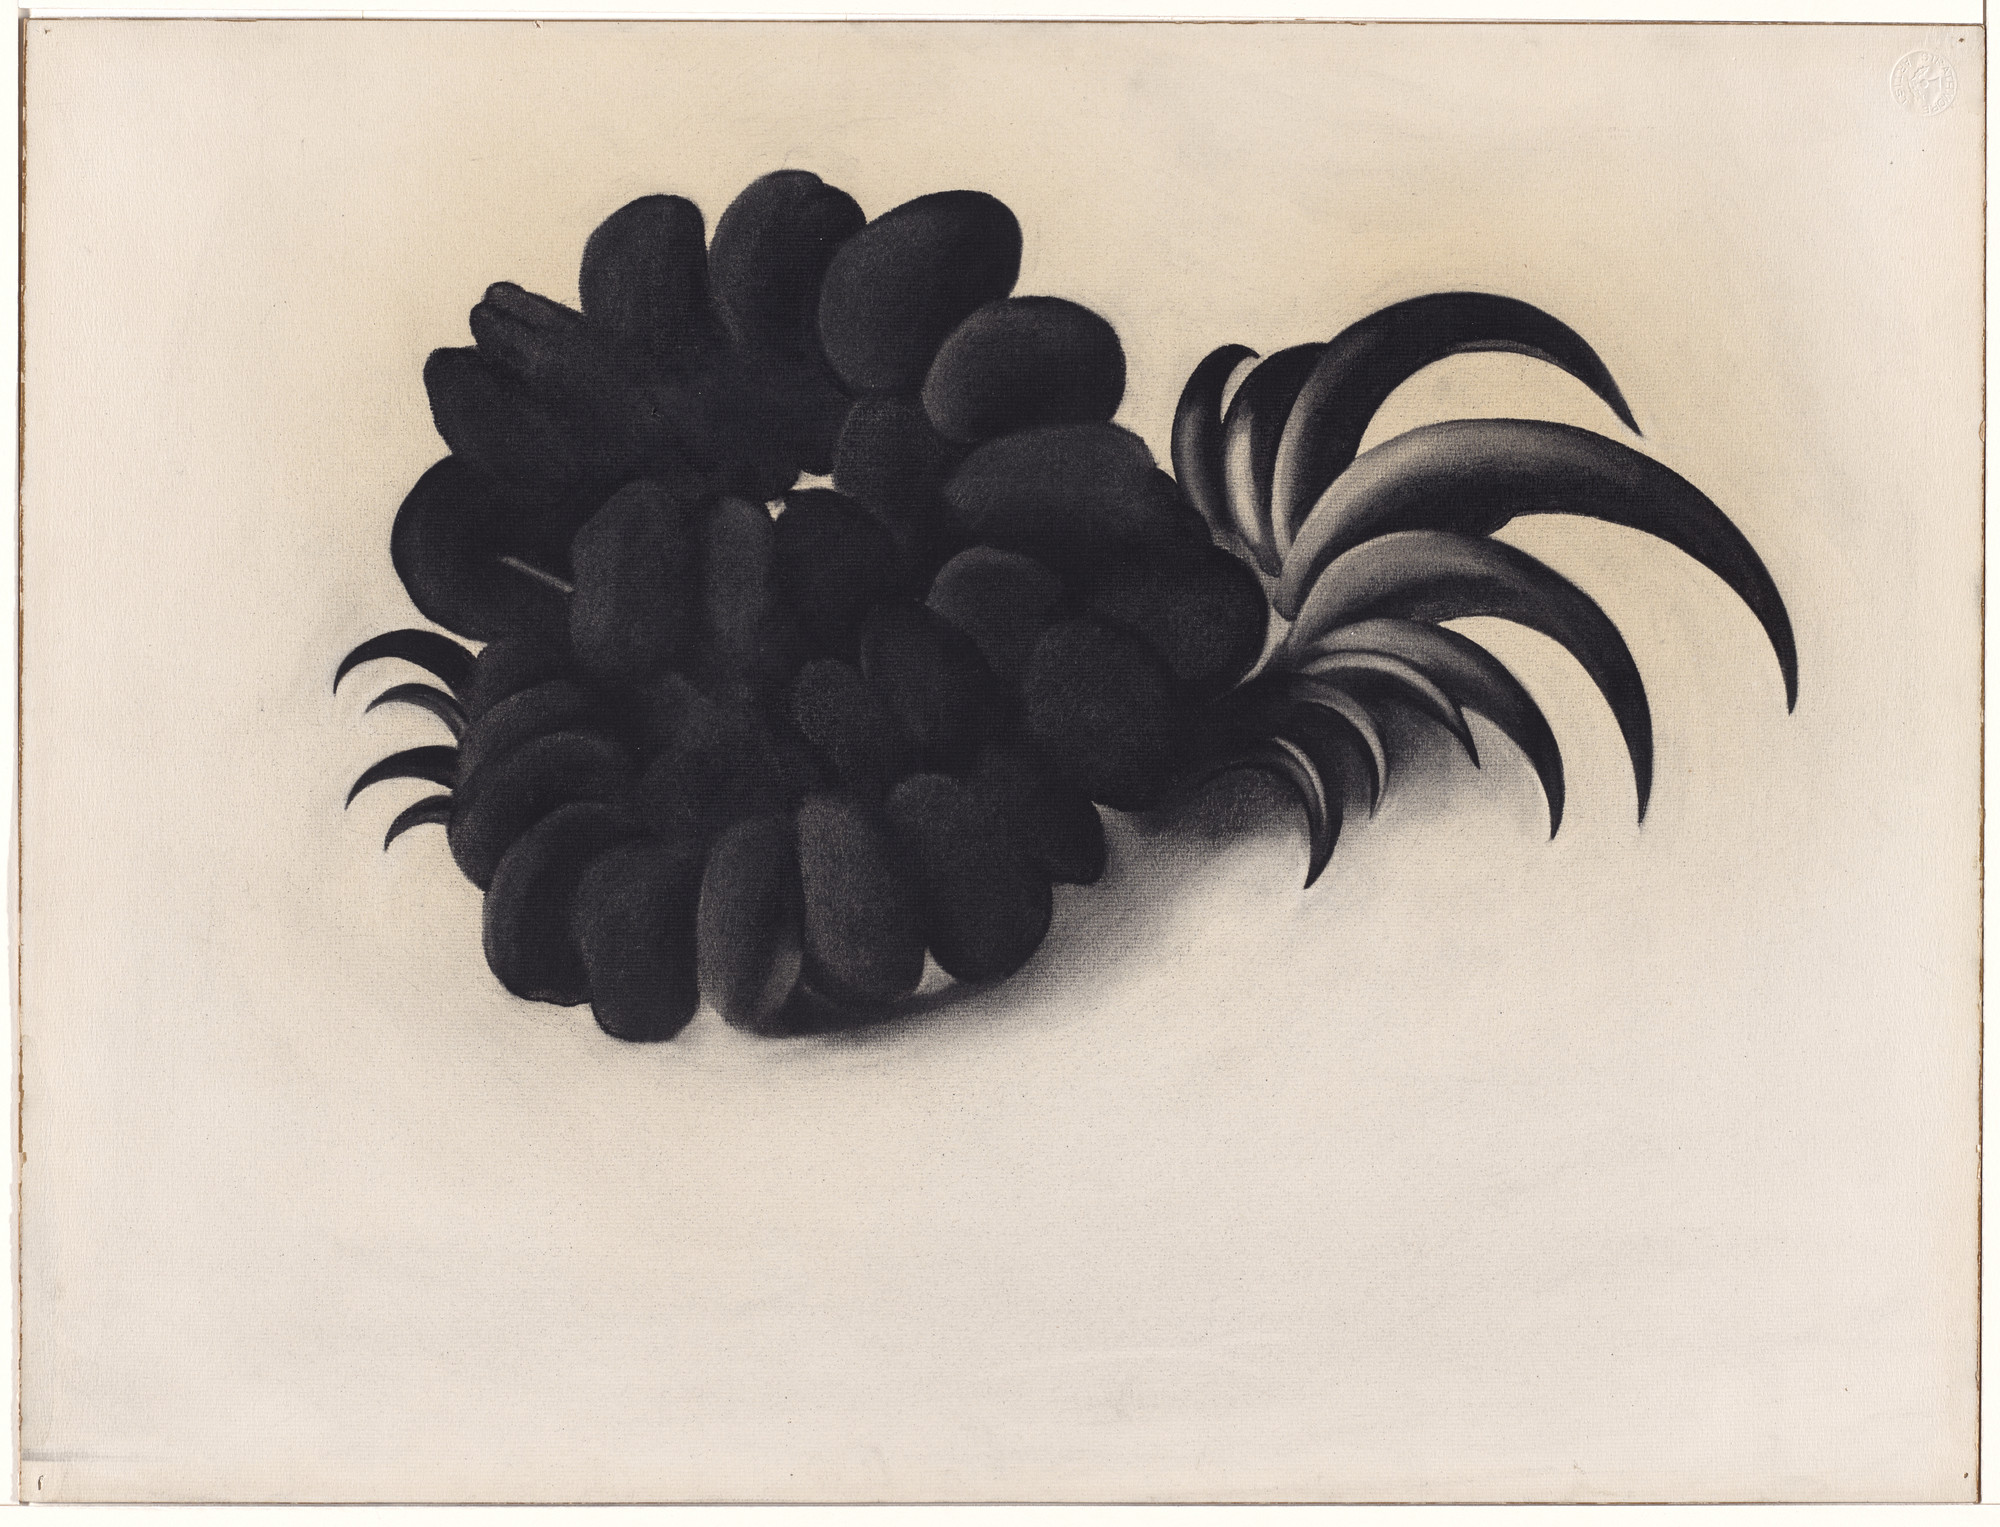 Georgia O'Keeffe. Eagle Claw and Bean Necklace. (1934)